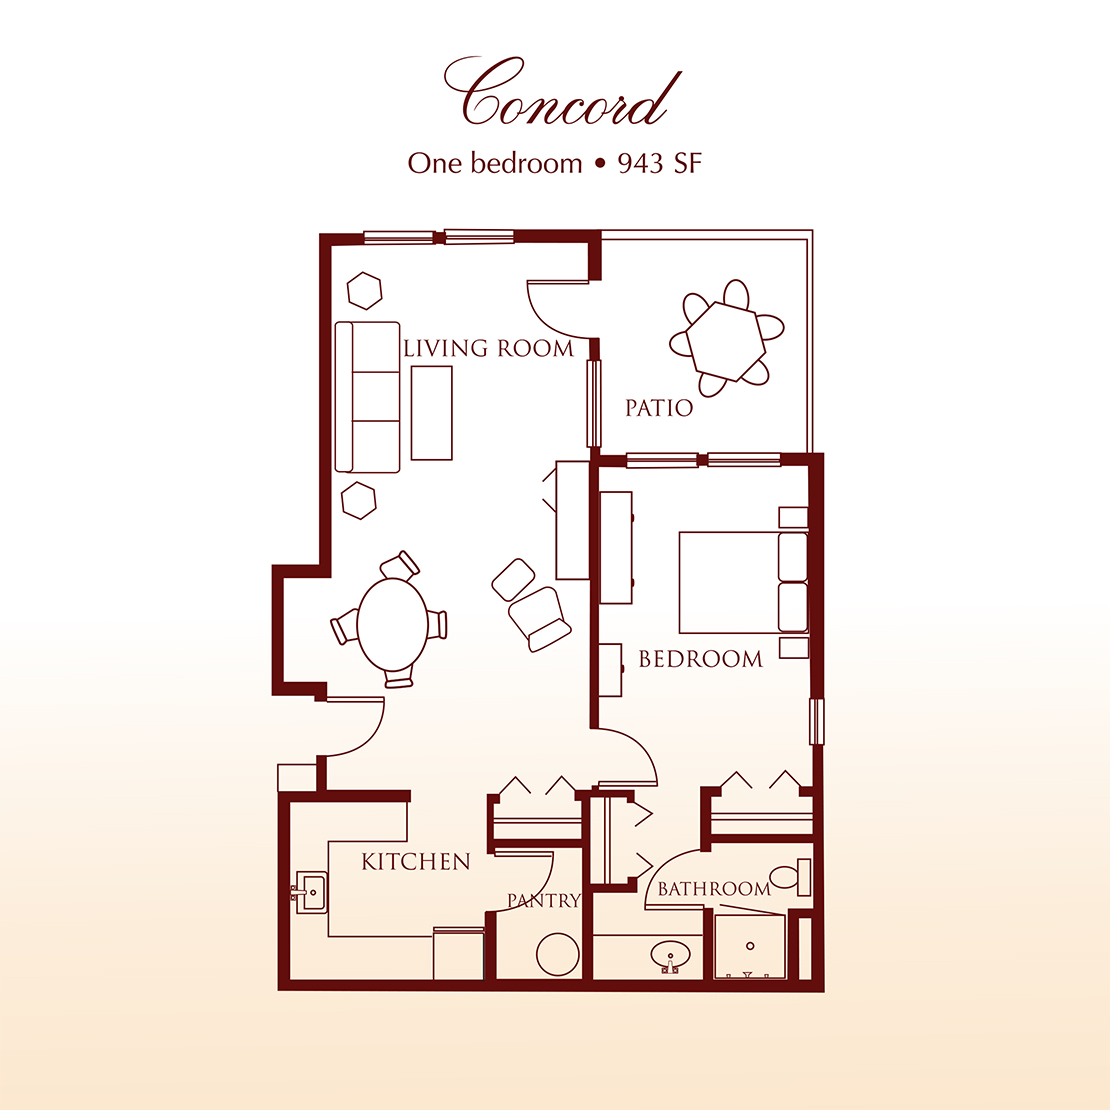 The Concord One Bedroom Suite at DeTray's Colonial Inn